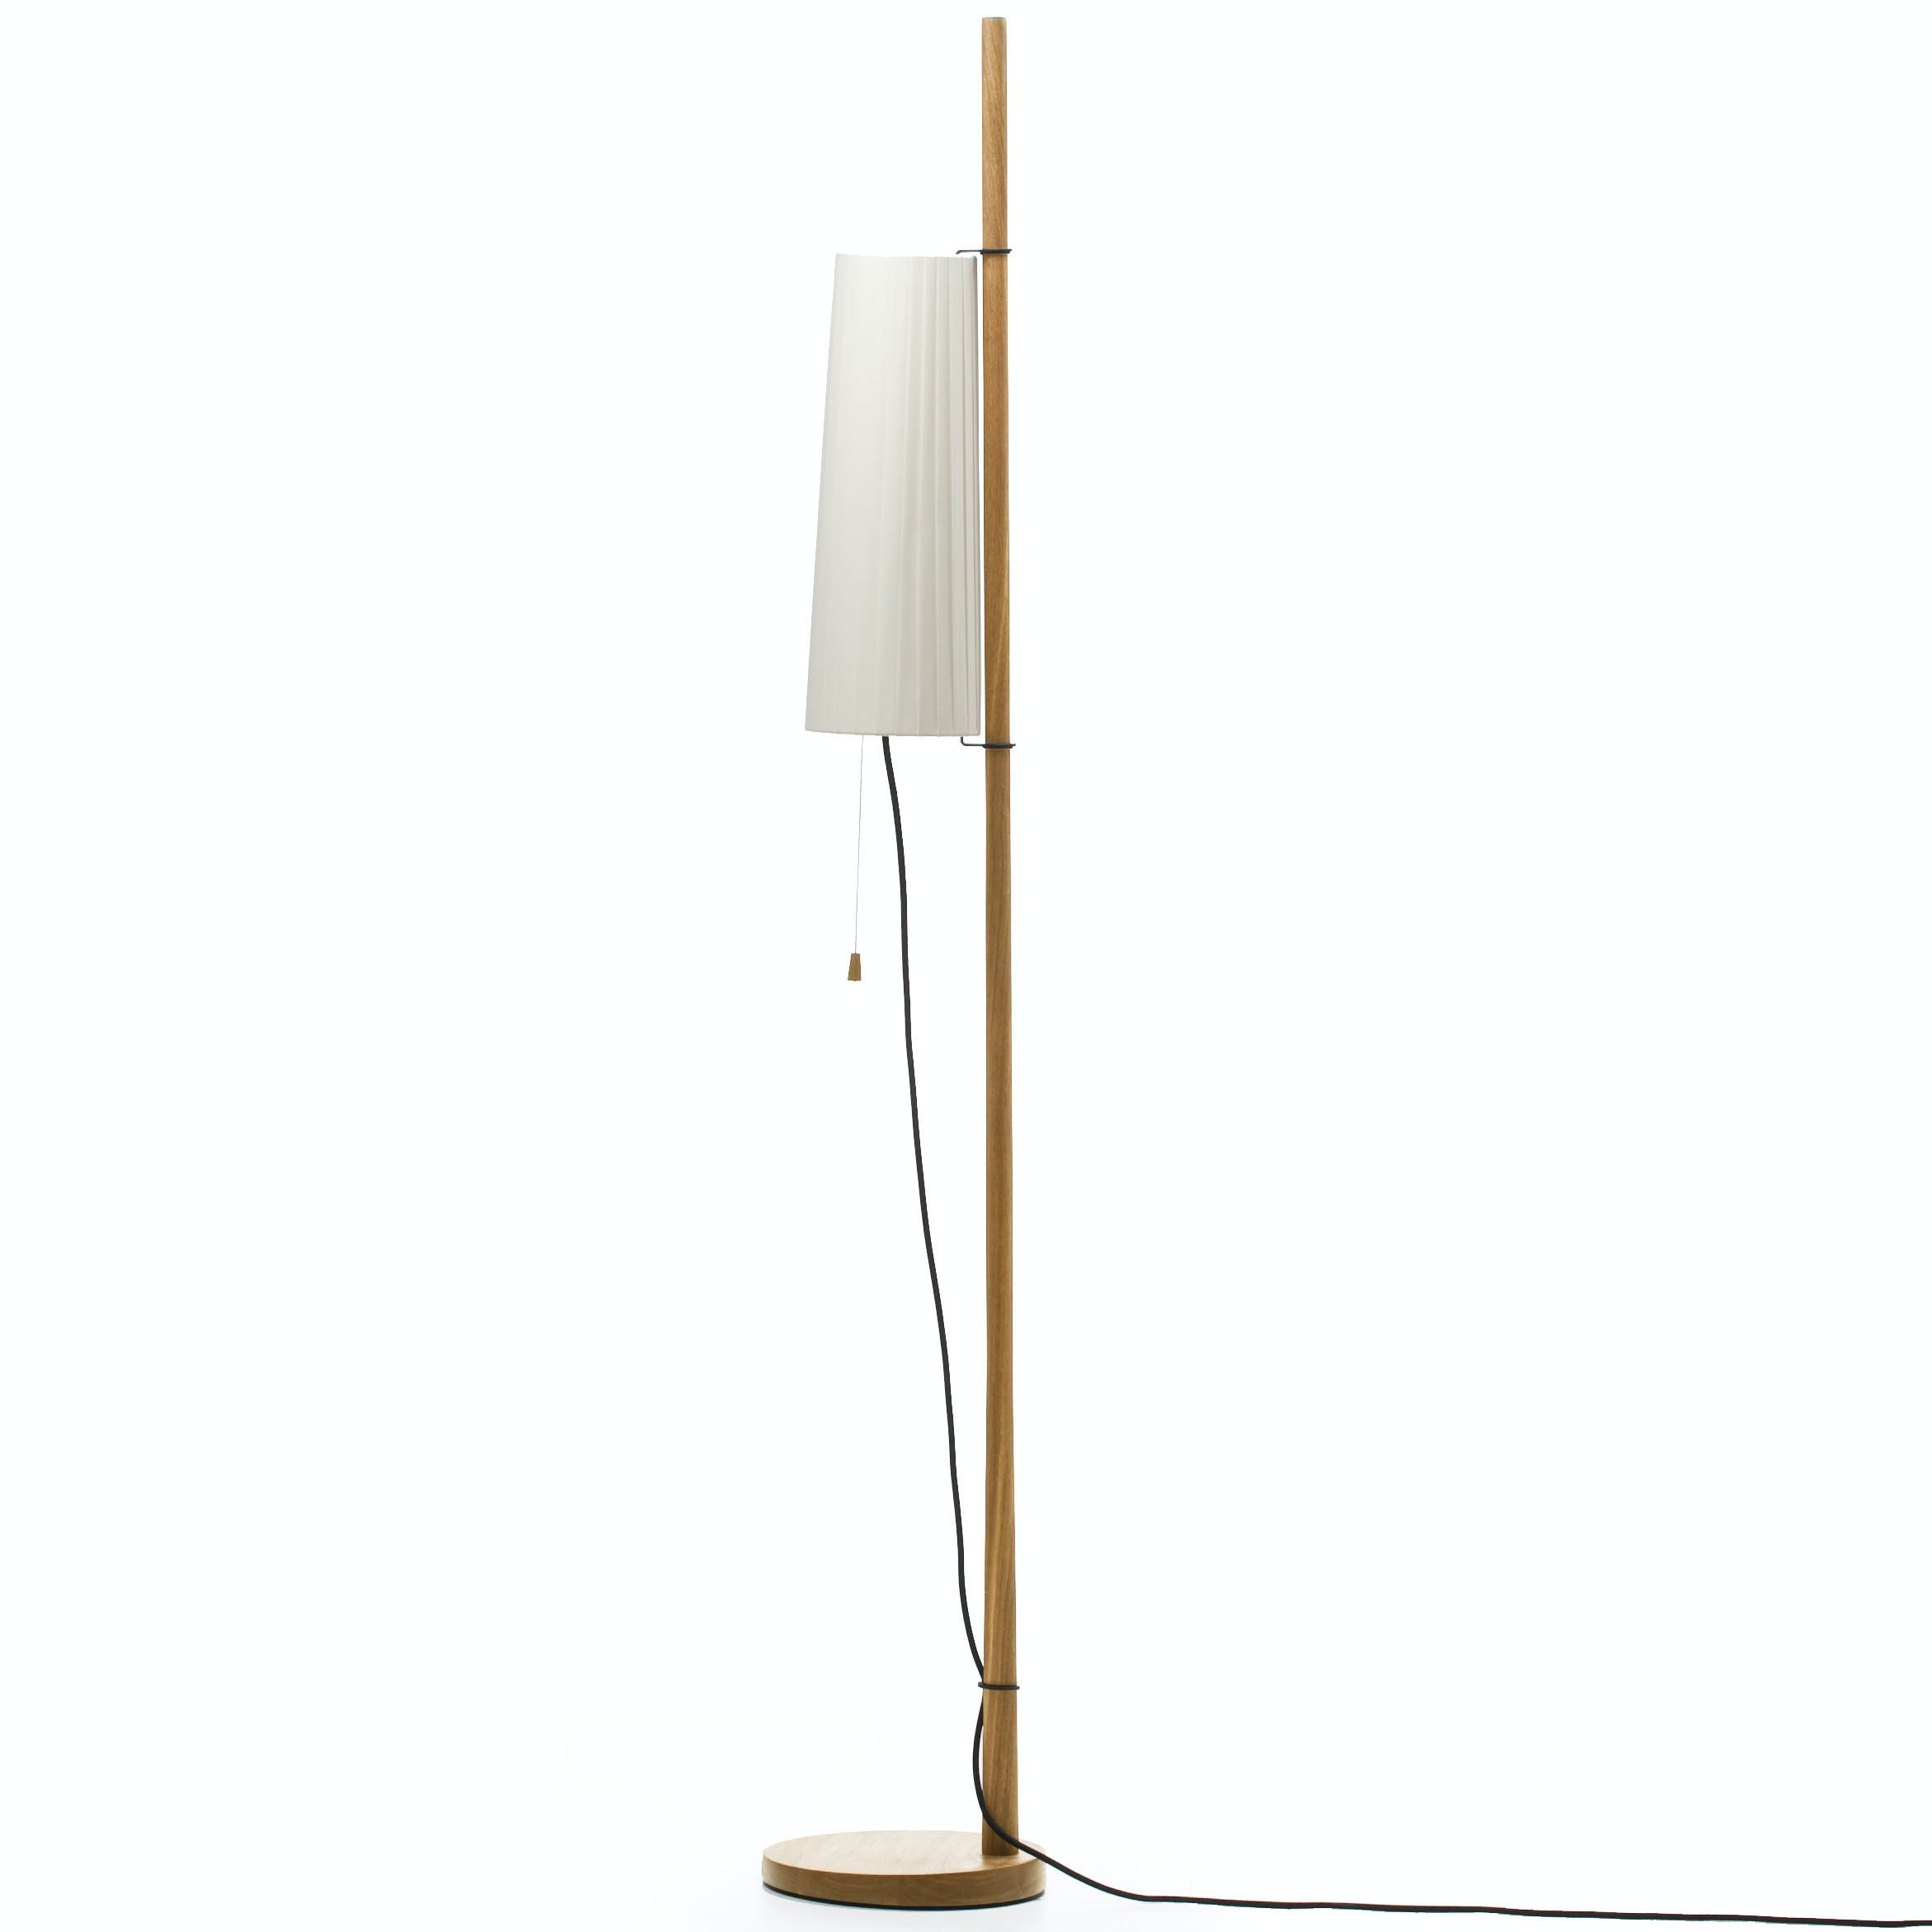 De La Espada Matthew Hilton Pole Light Oak Haute Living